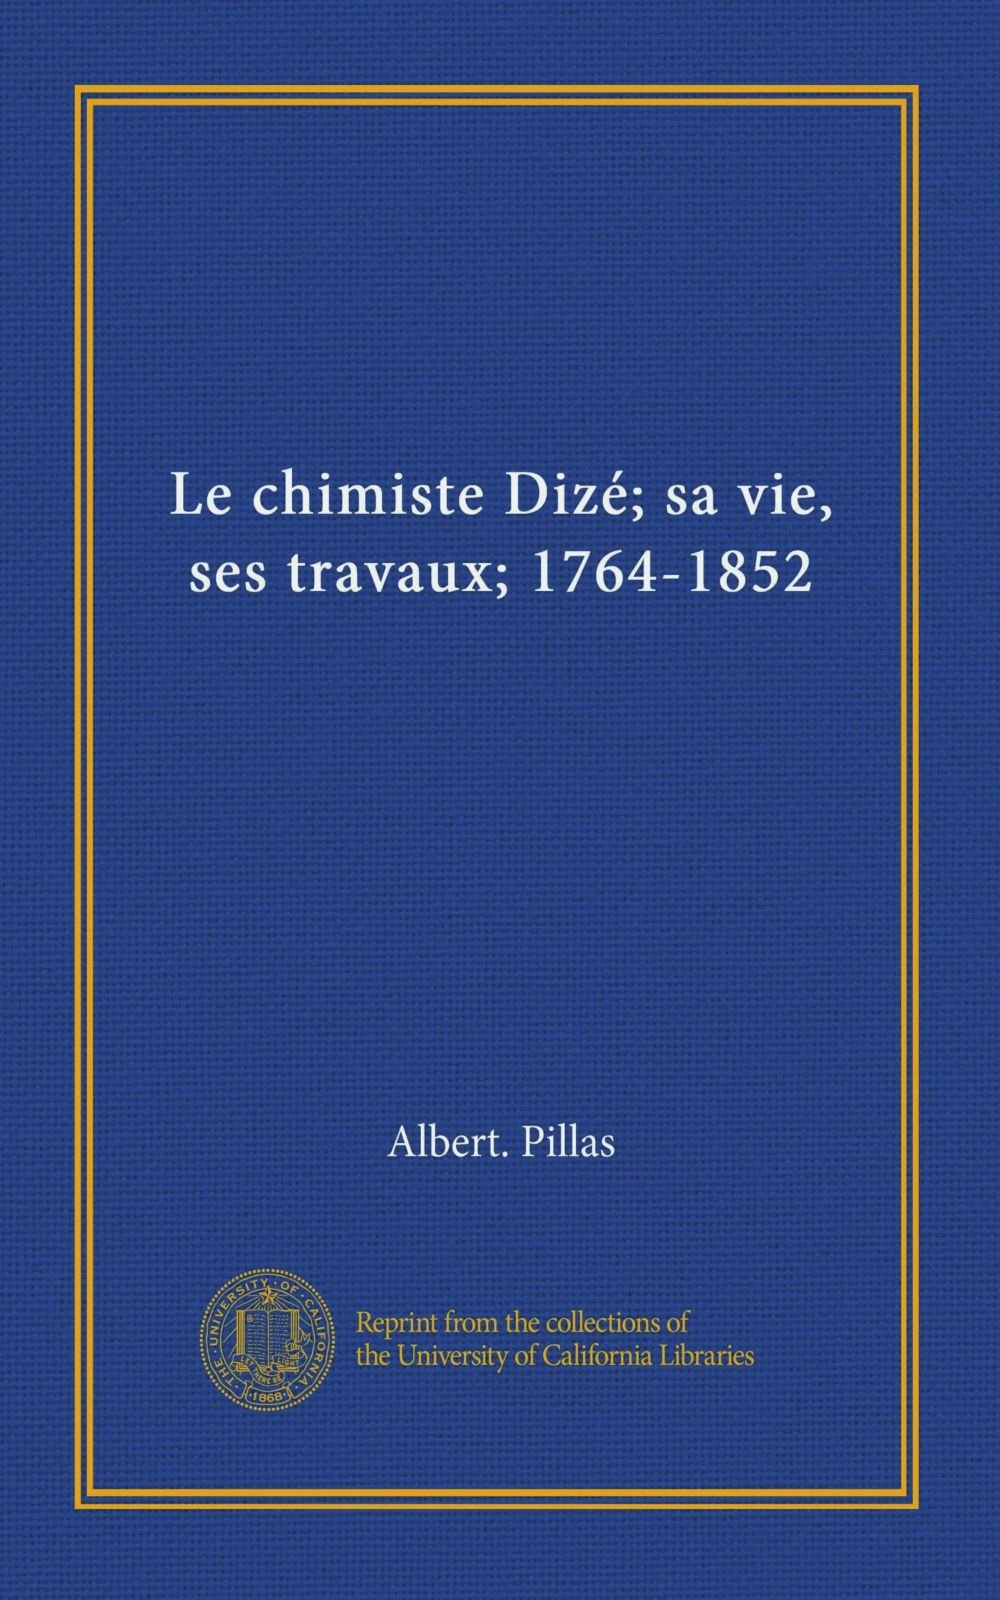 Download Le chimiste Dizé; sa vie, ses travaux; 1764-1852 (French Edition) ebook